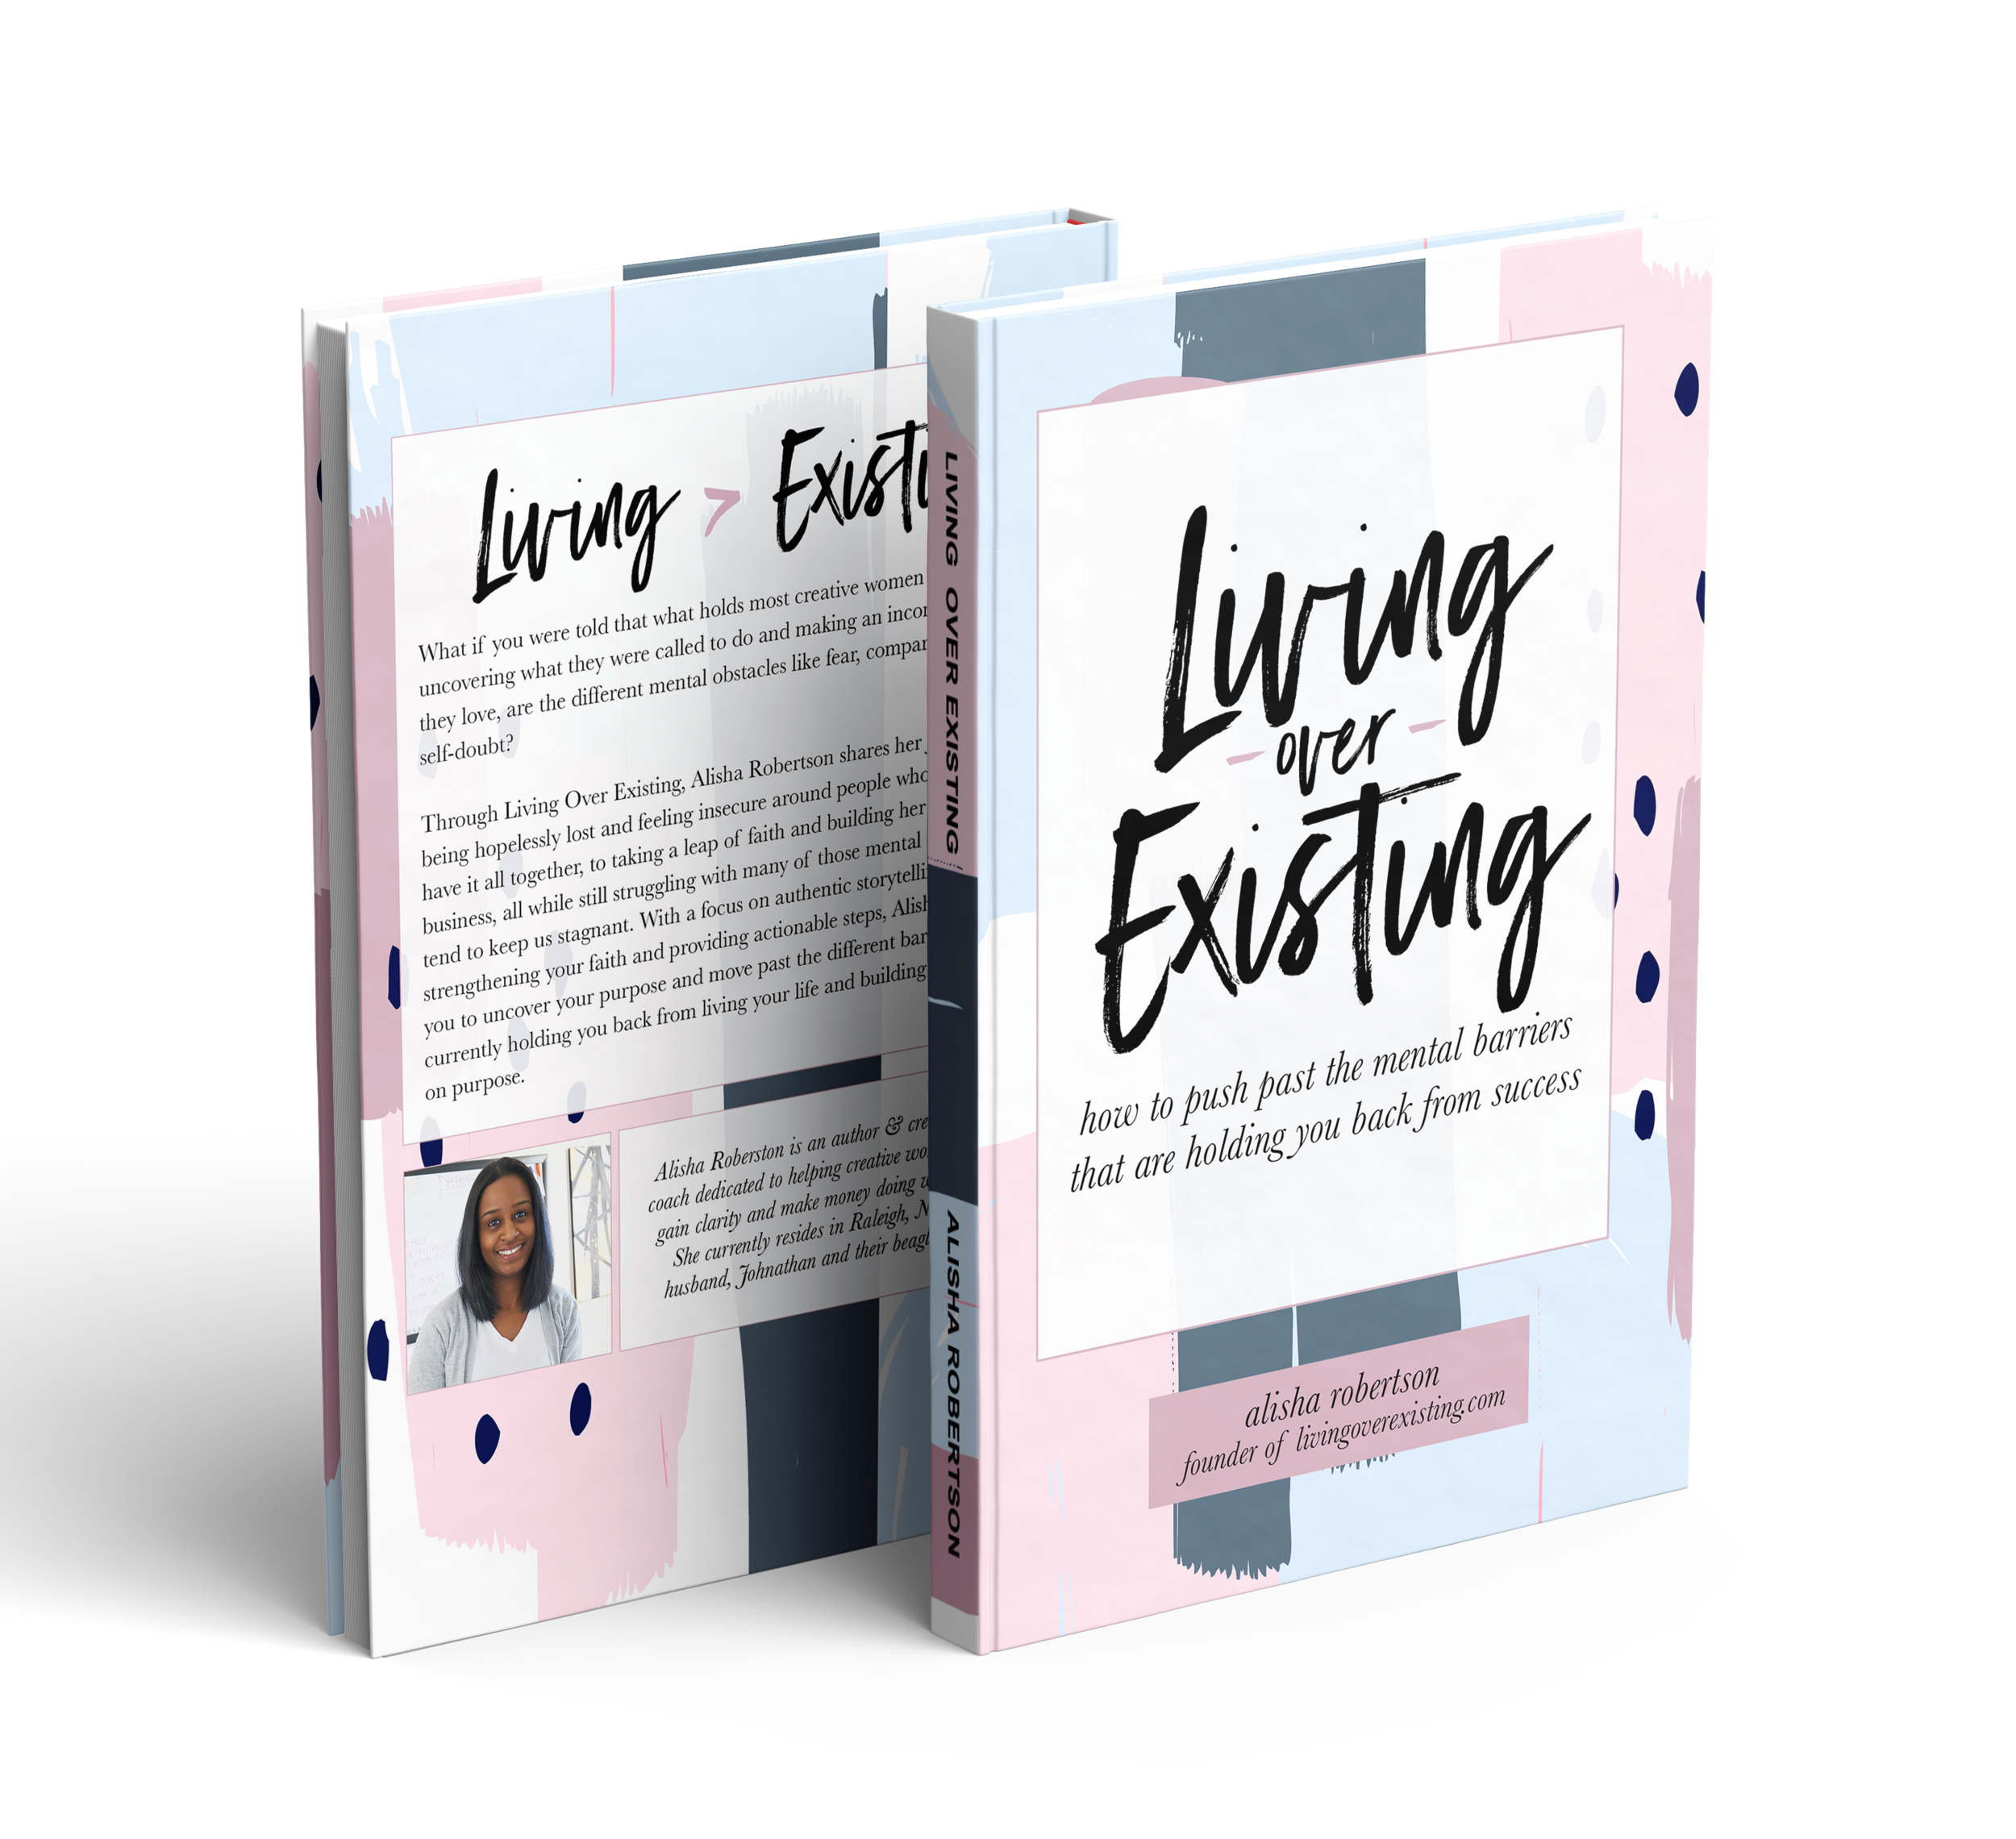 join the living over existing launch team - I'm so excited to announce that you can now sign up for the Living Over Existing book launch team! I will be choosing 40 incredible women at random to help me spread the word about the new book! As a part of the launch team you'll have full access to me in a private community plus a few launch perks! I'll be contacting the 40 women by Monday, October 9th.